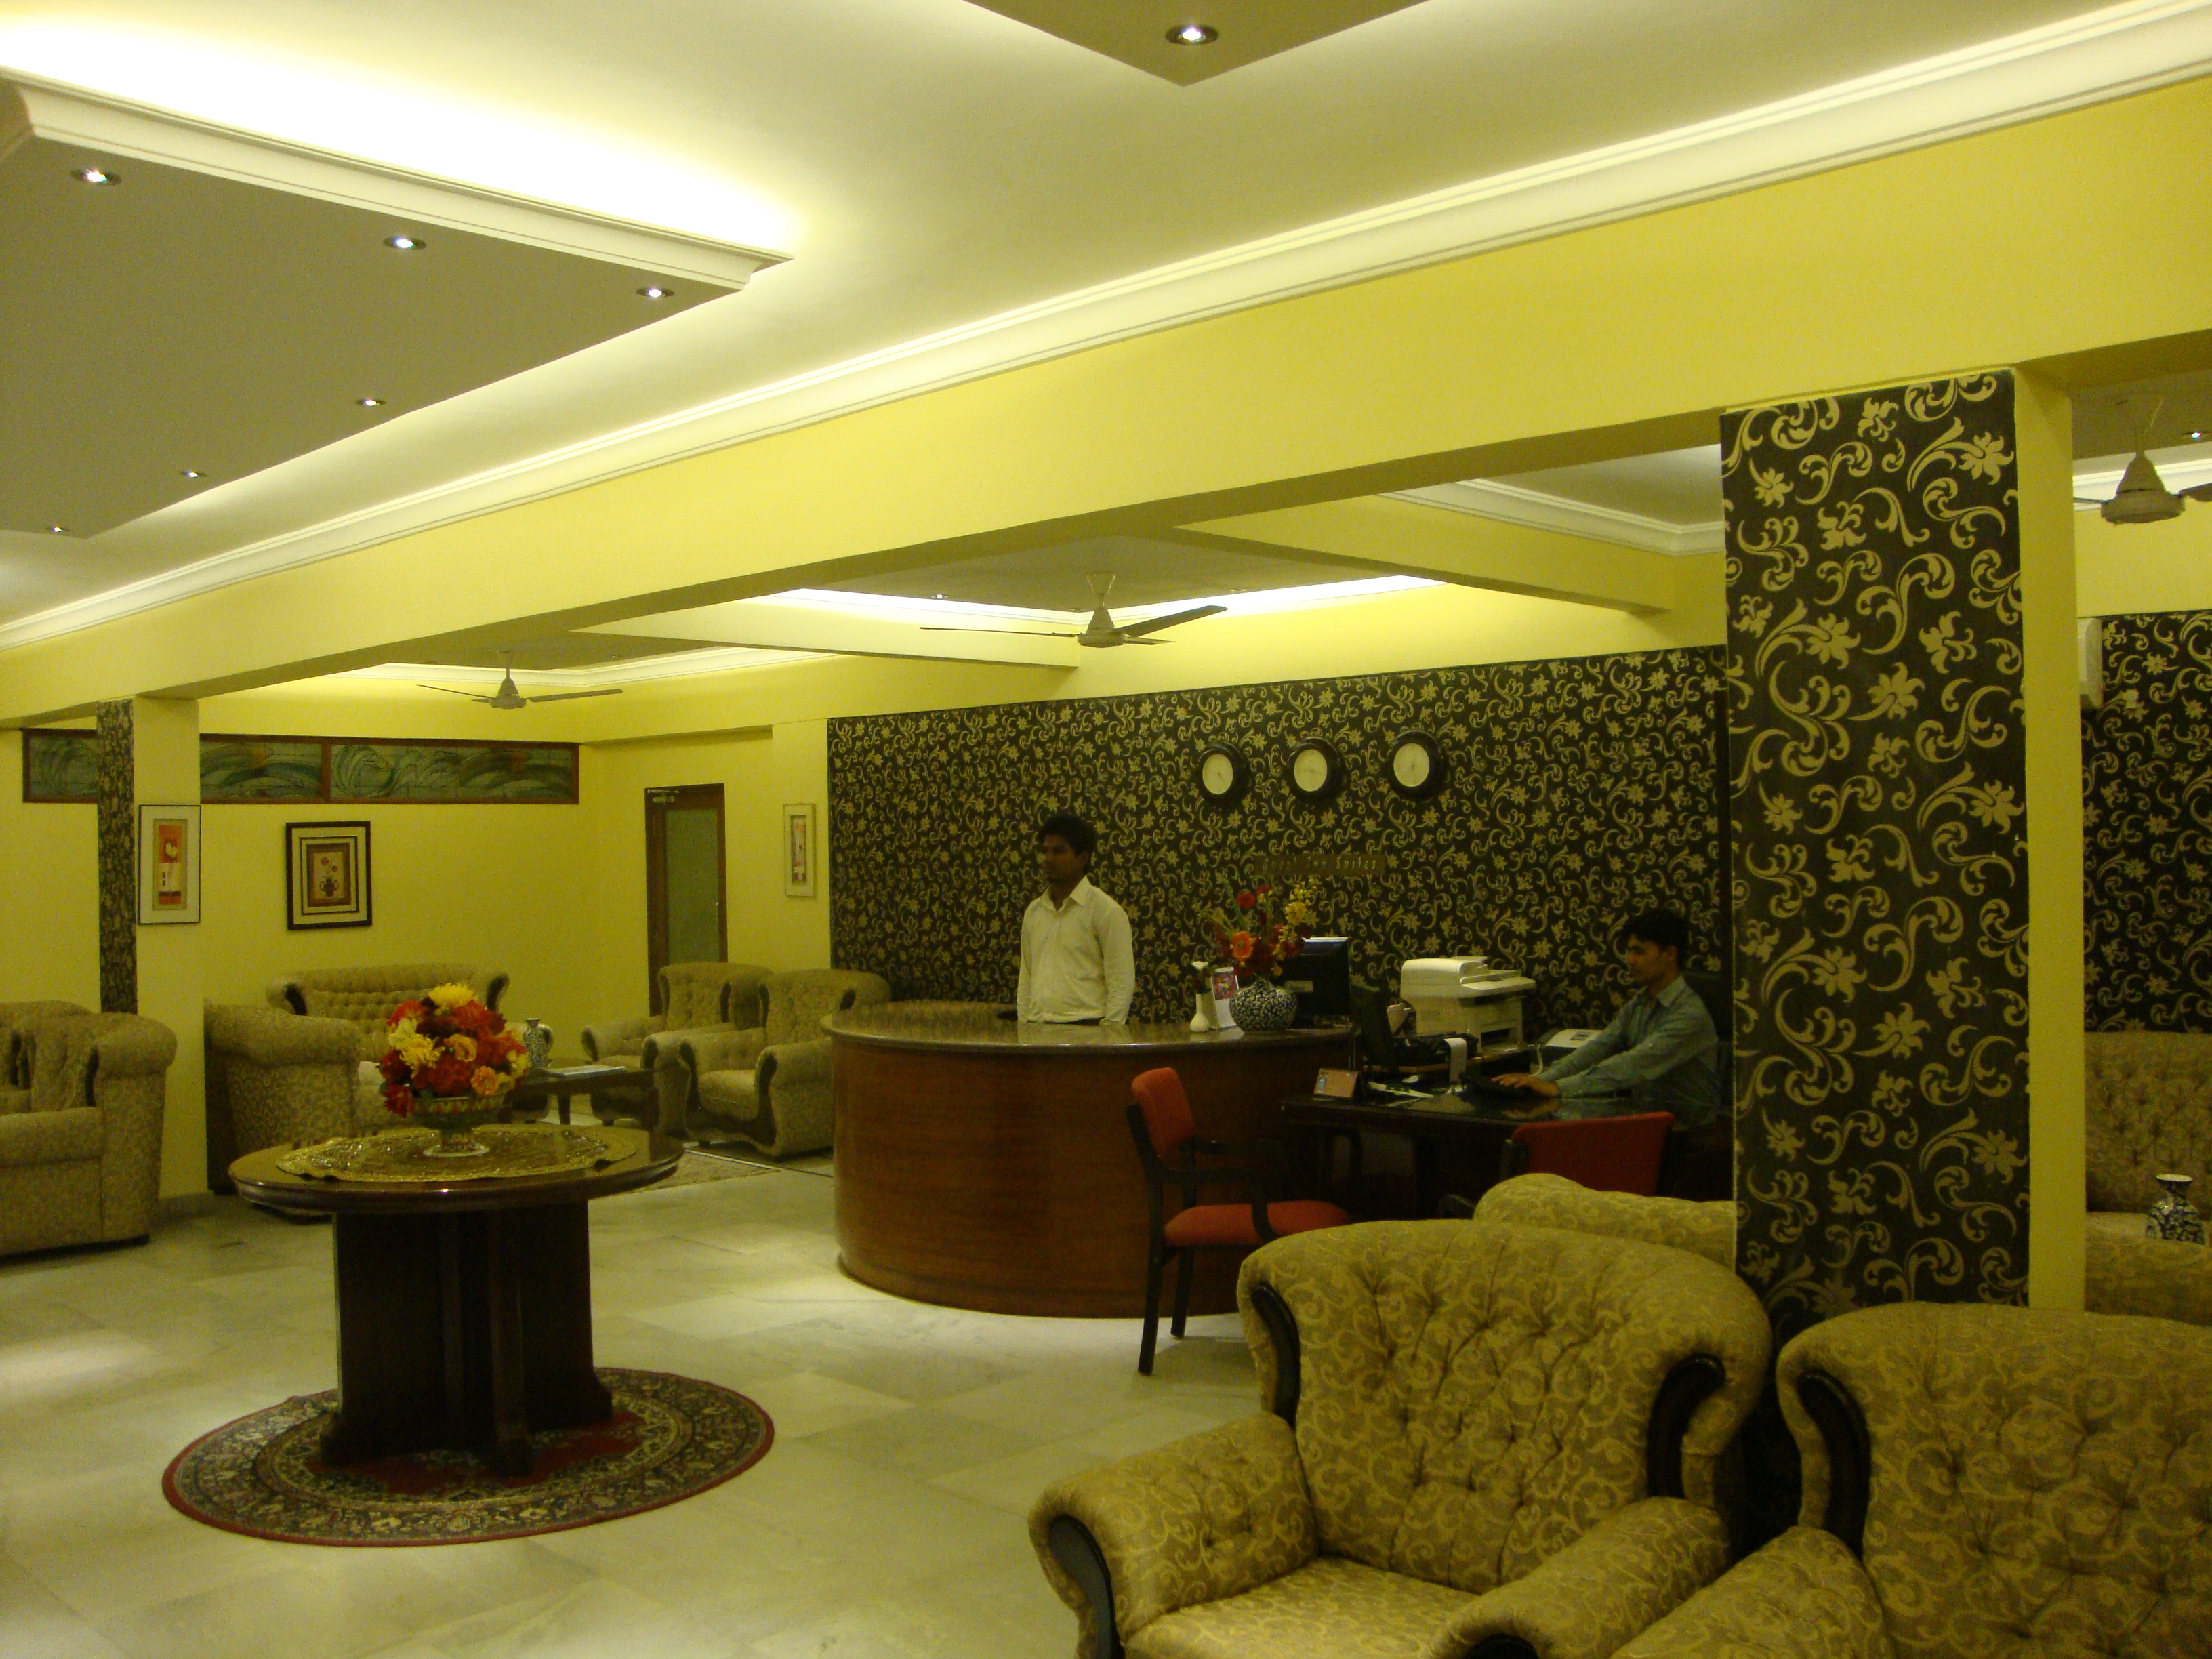 Guest Inn Suites & OYO Rooms